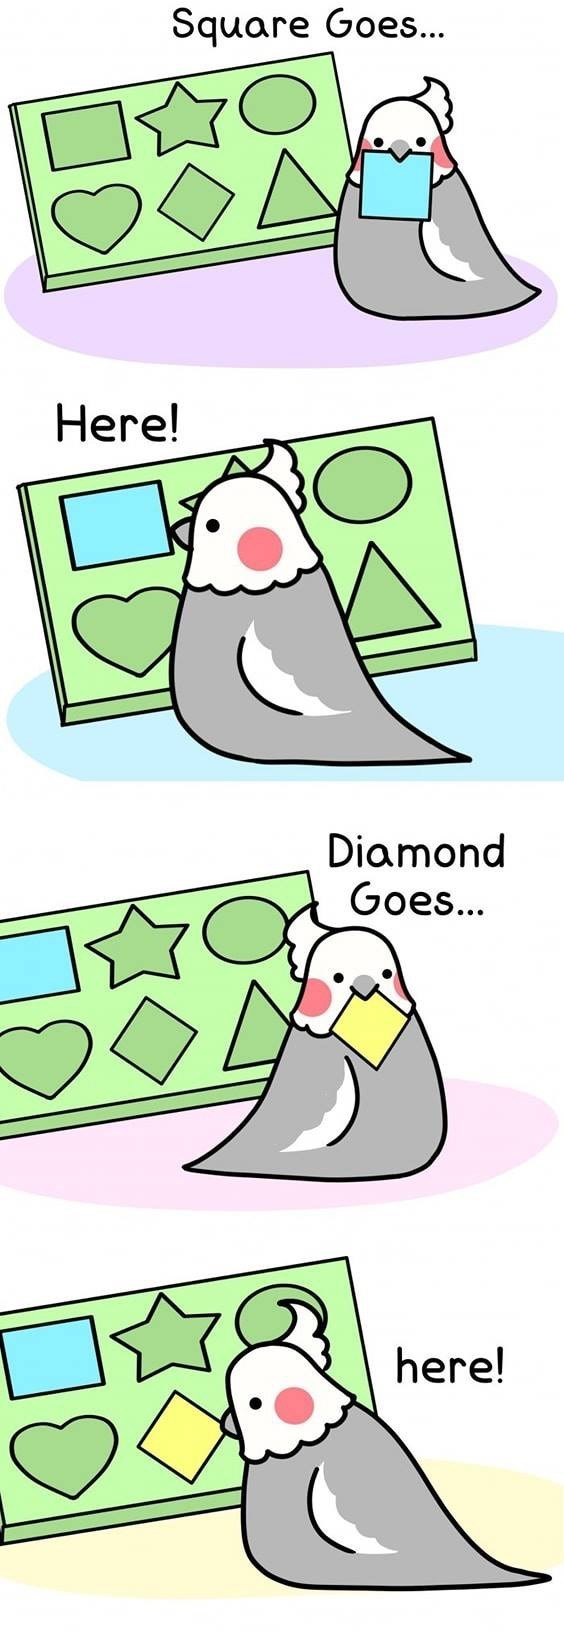 Cartoon - Square Goes... Here! Diamond Goes... here!